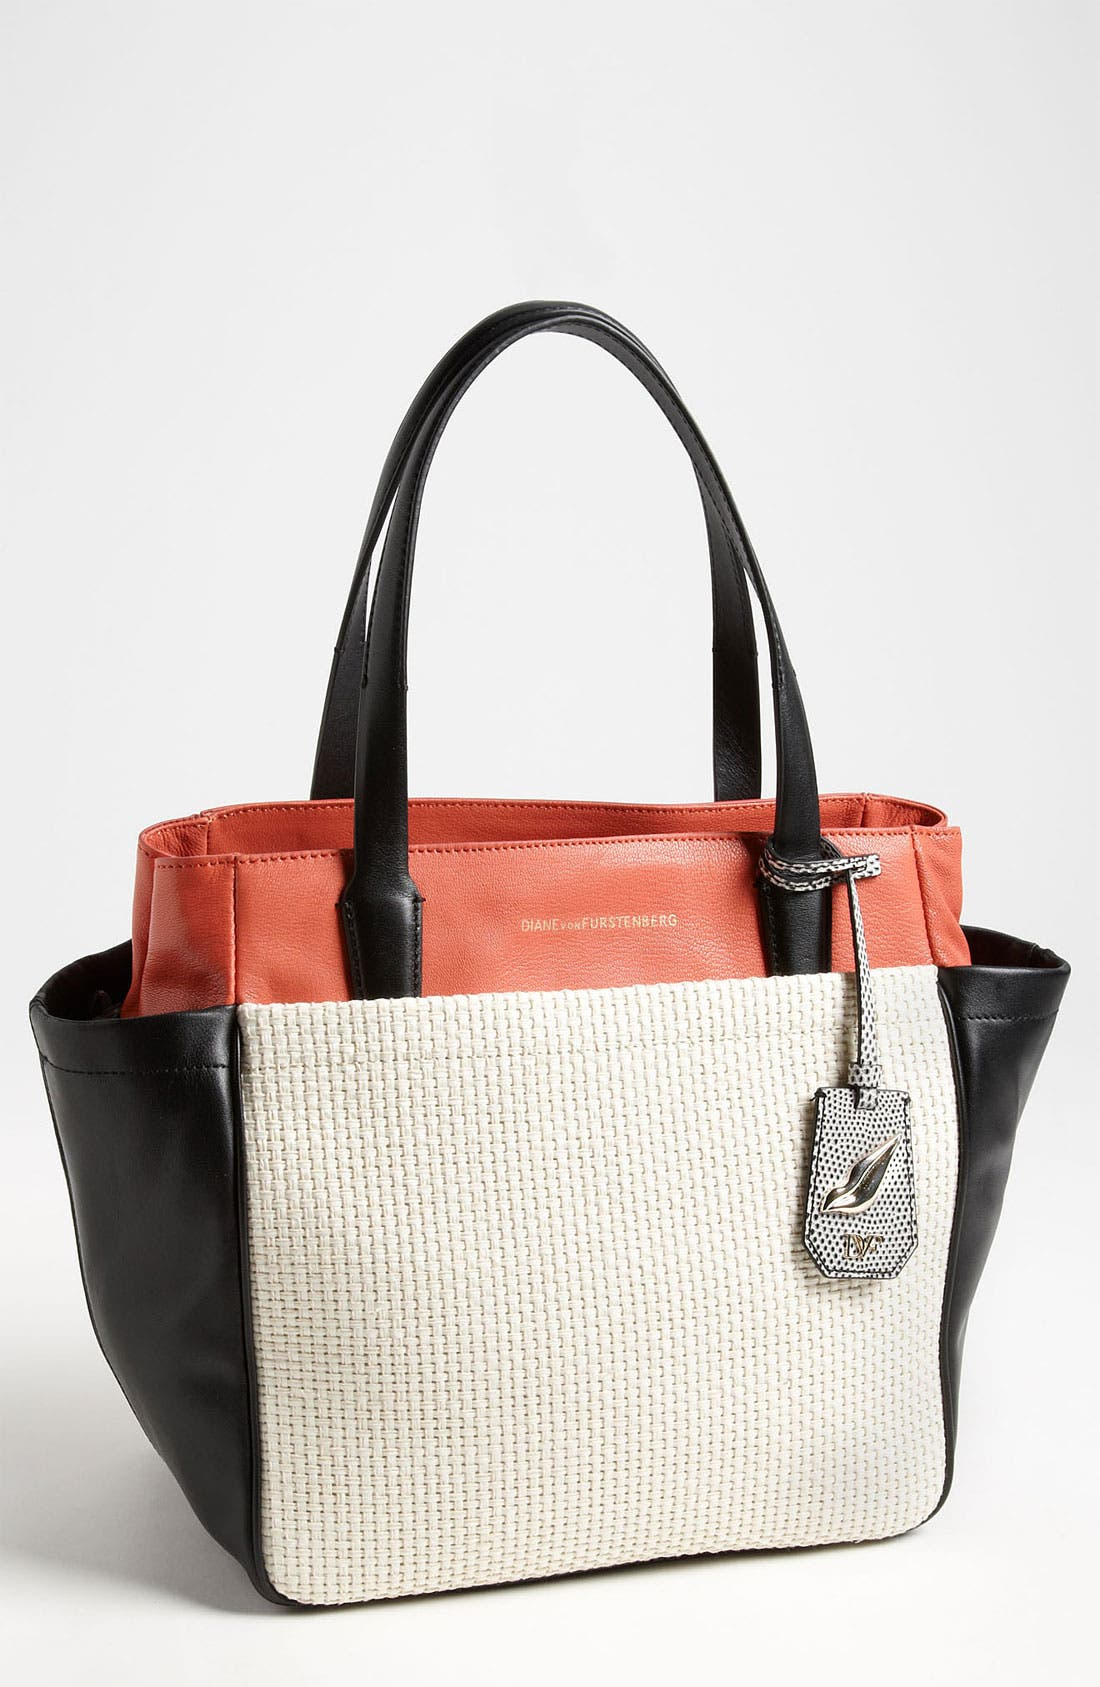 Alternate Image 1 Selected - Diane von Furstenberg 'On the Go' Leather & Straw Tote